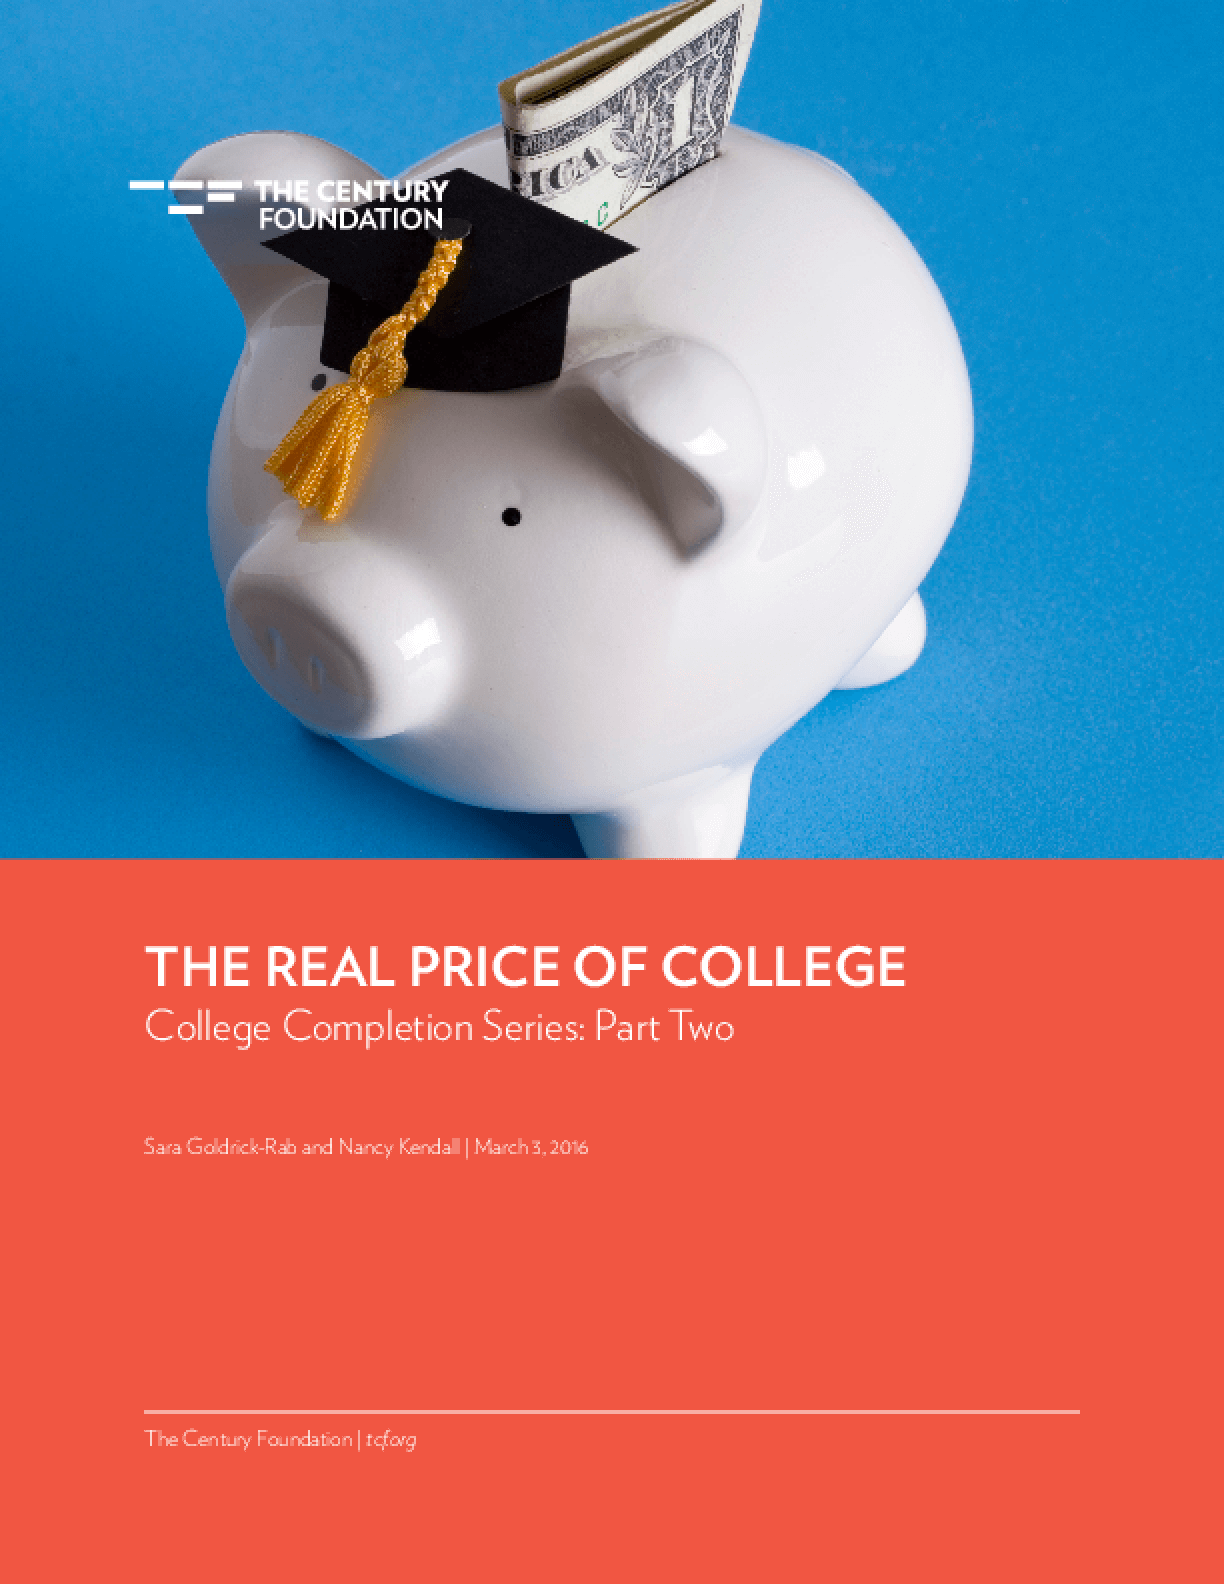 The Real Price of College: College Completion Series: Part Two